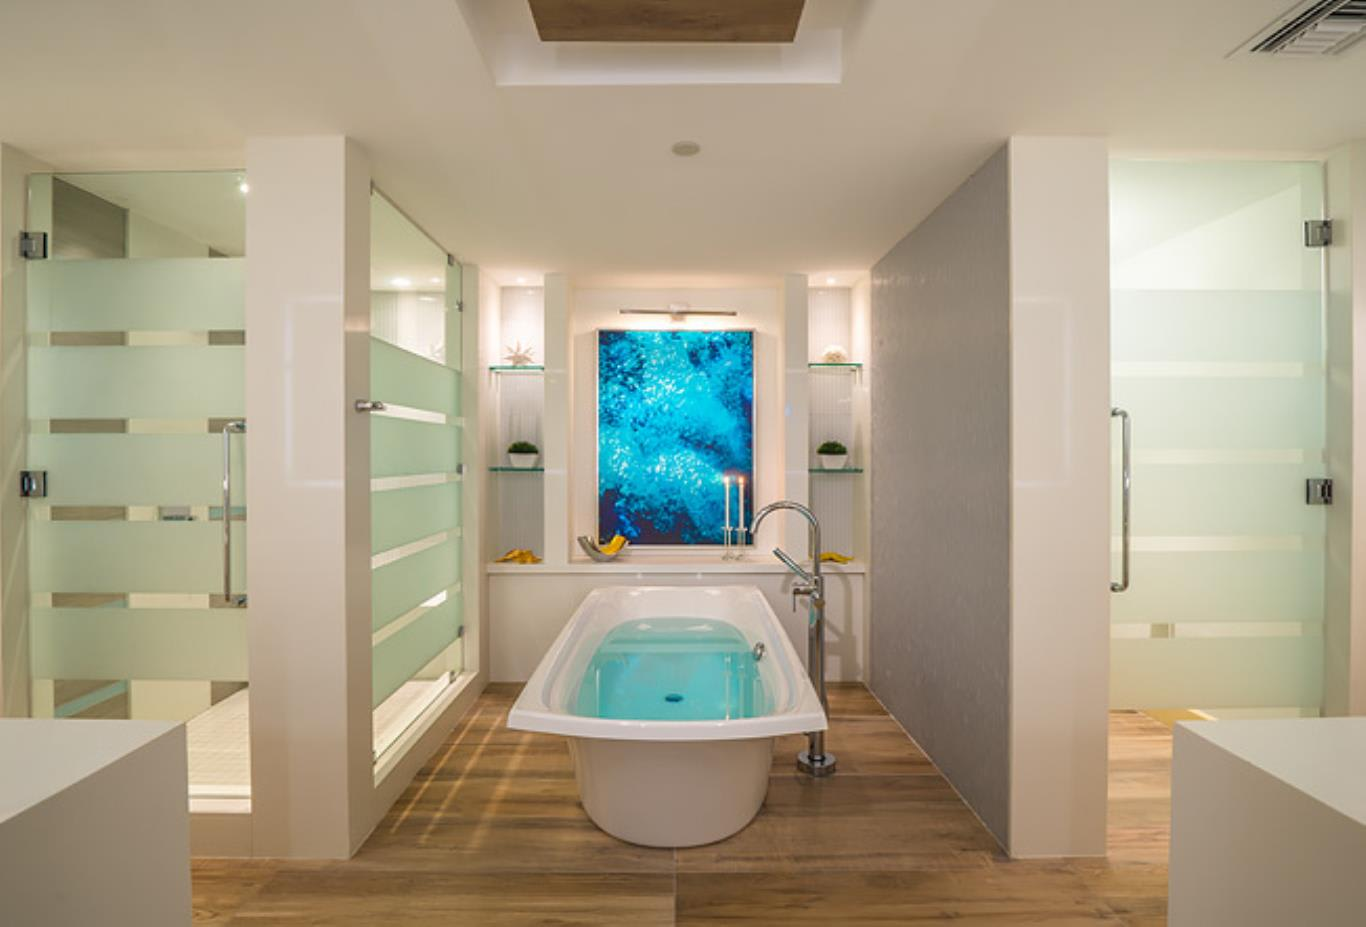 B1PP Beachfront Prime Minister One Bedroom Oceanview Butler Suite with Private Pool and Patio Tranquillity Soaking Tub bathroom tub